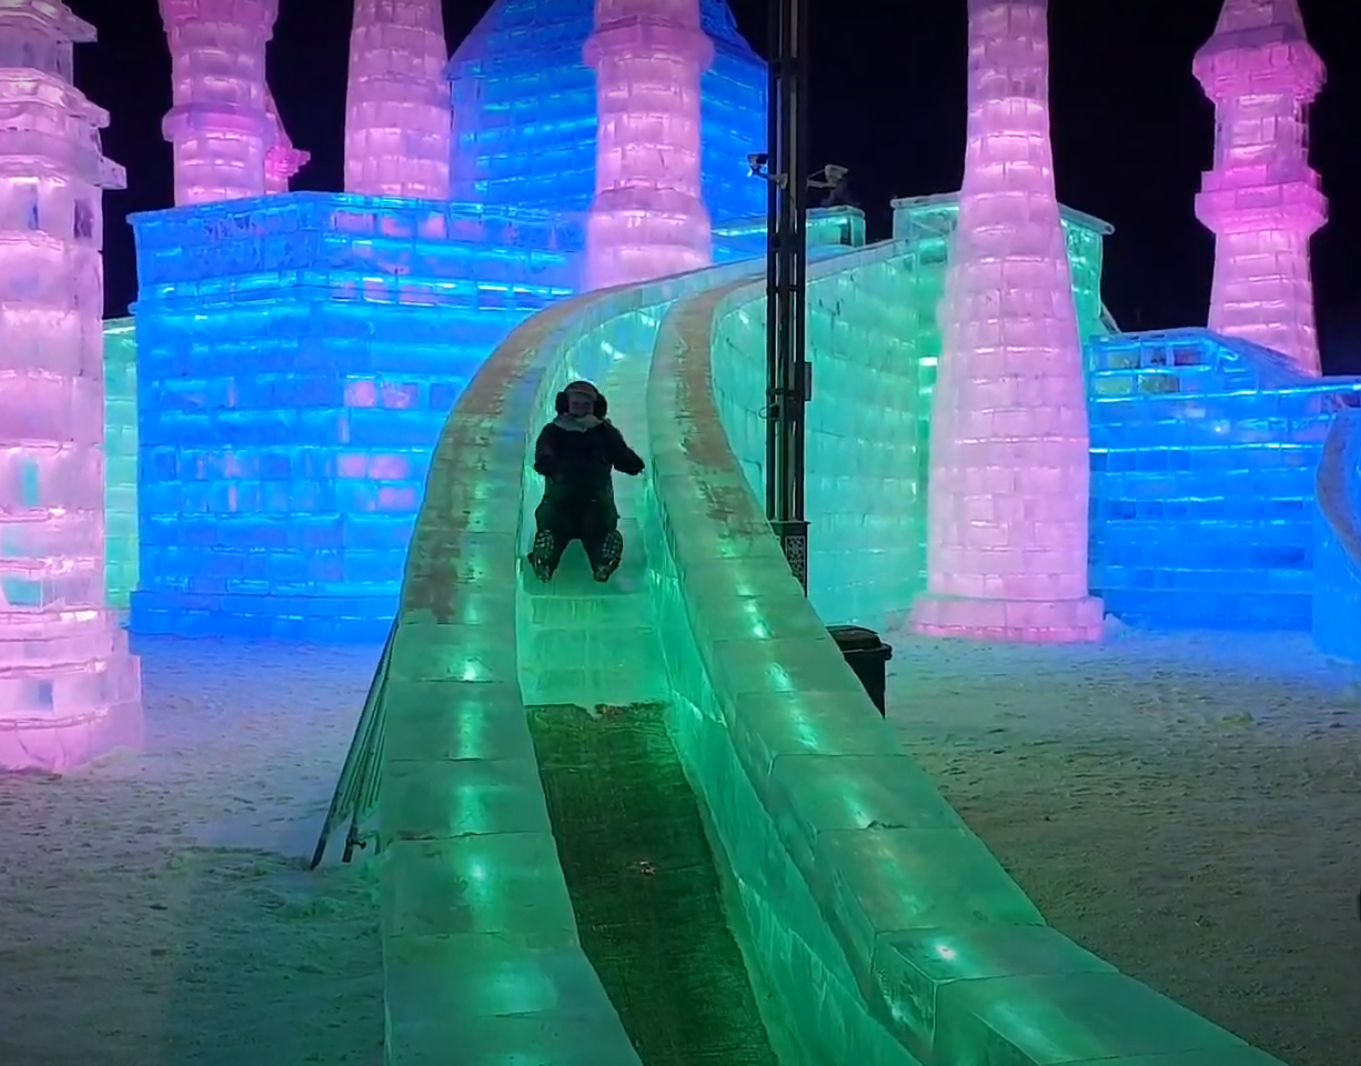 Rosie on a green ice slide at Harbin Ice and Snow World